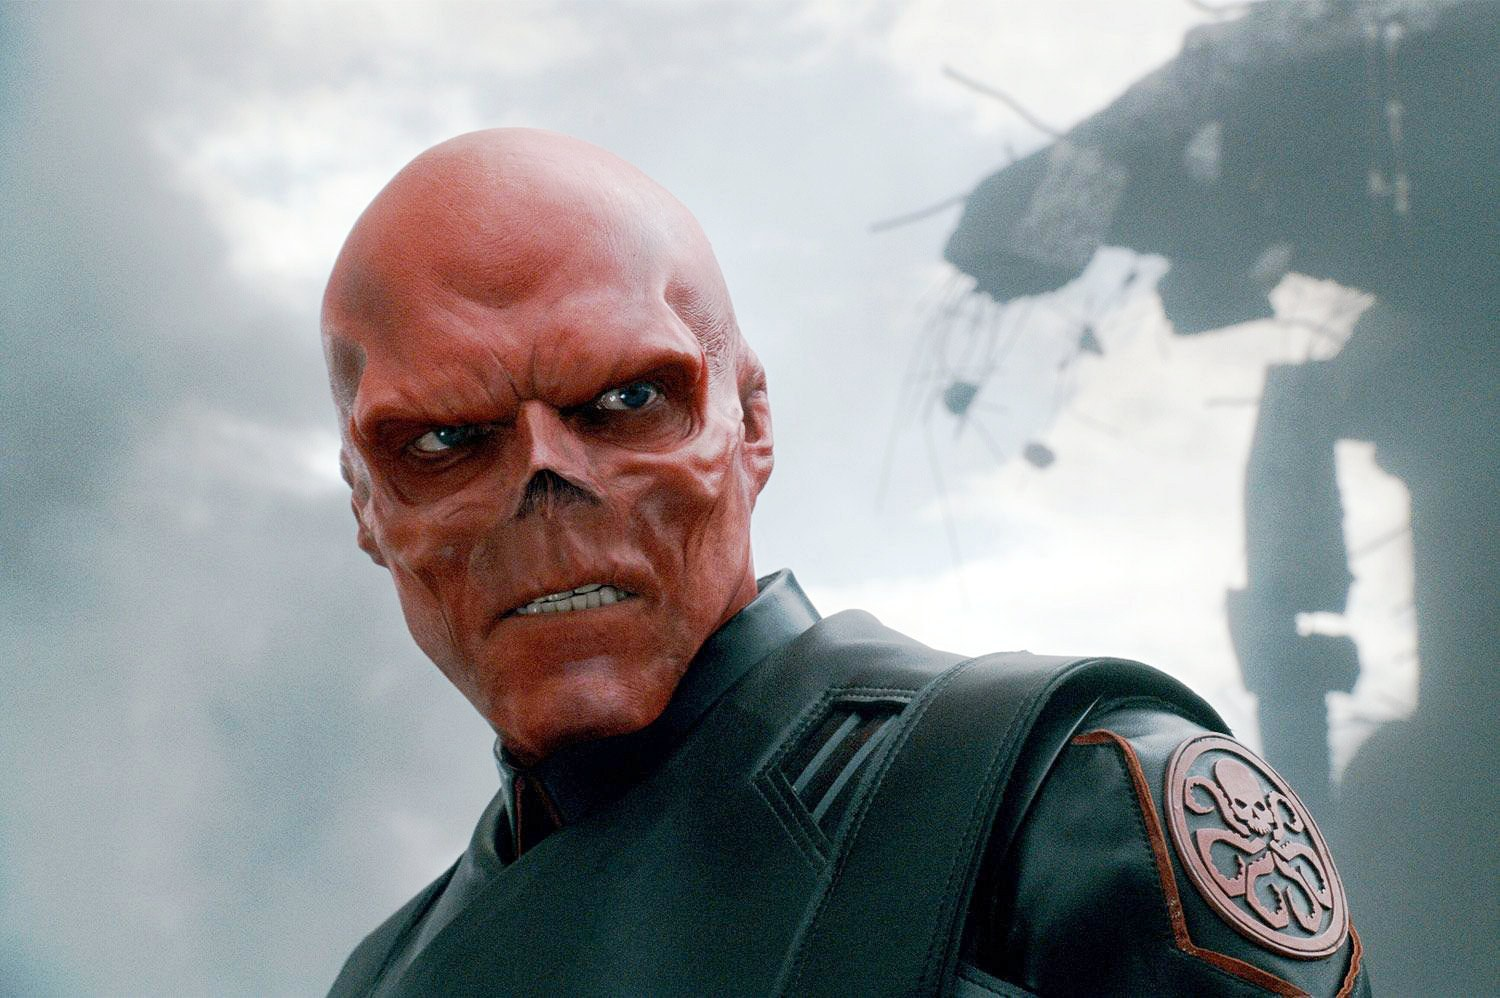 Red Skull Could Be the Secret Villain in 'The Avengers'